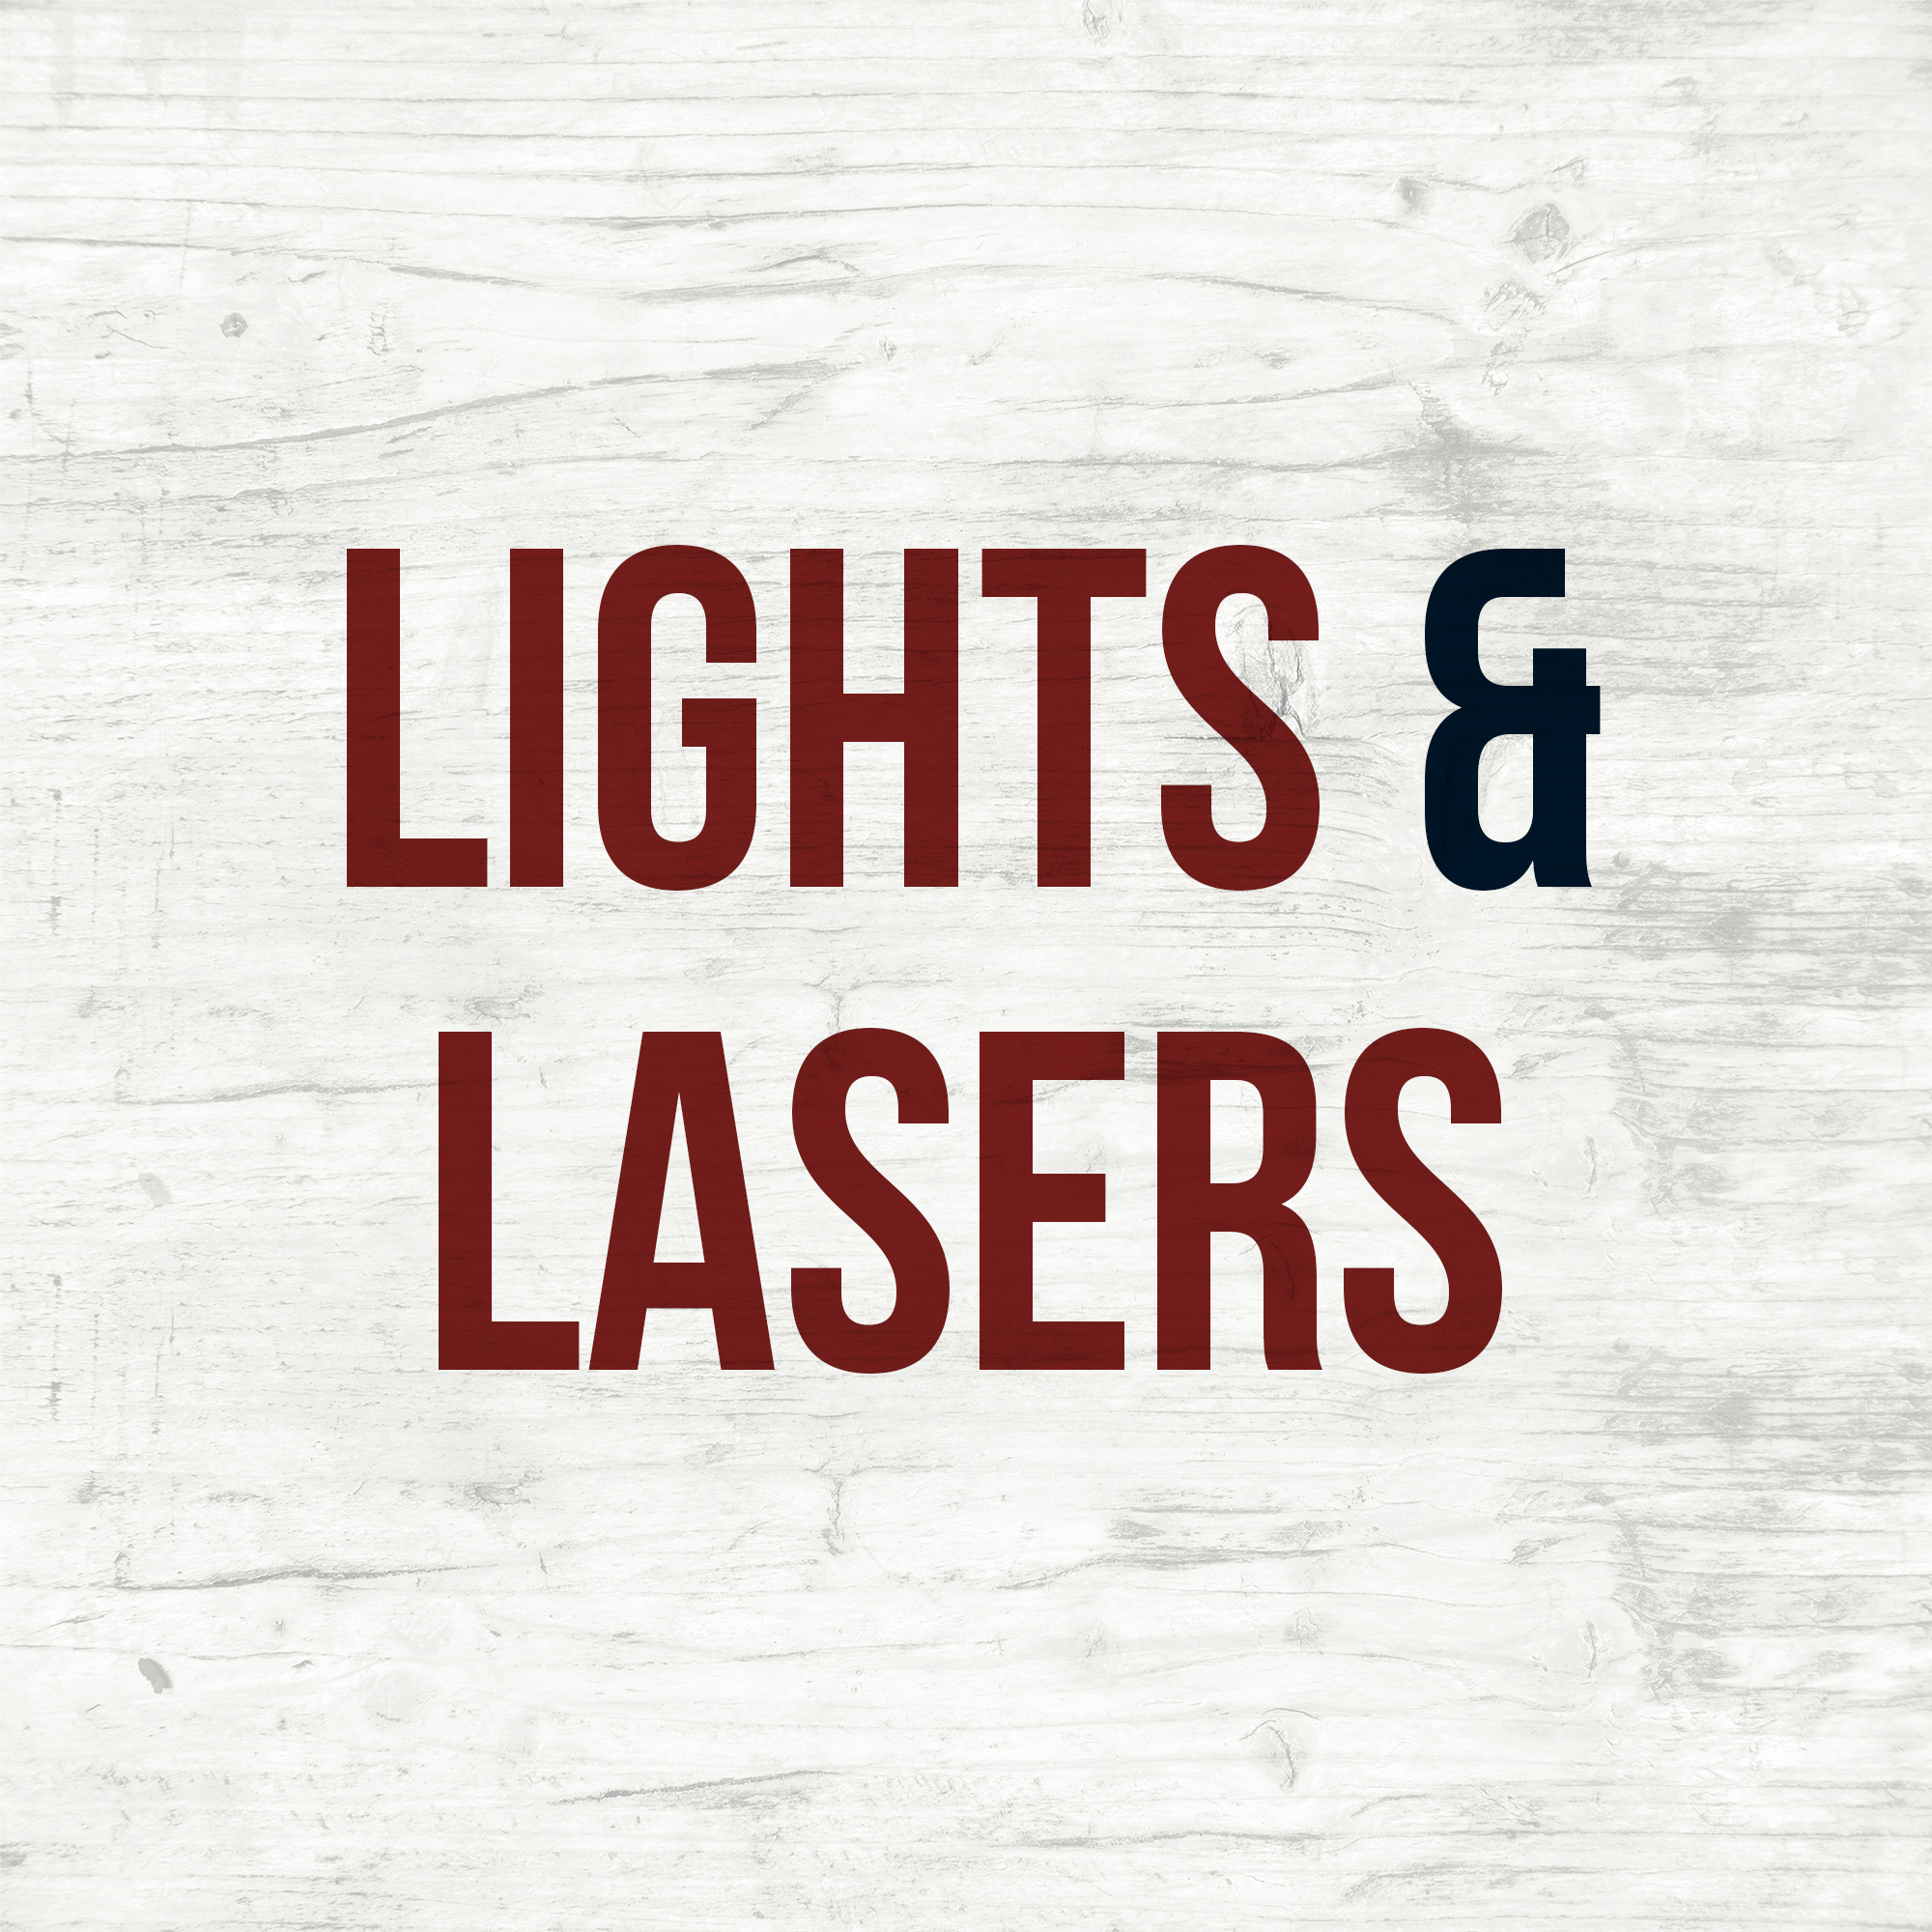 Lights/Lasers